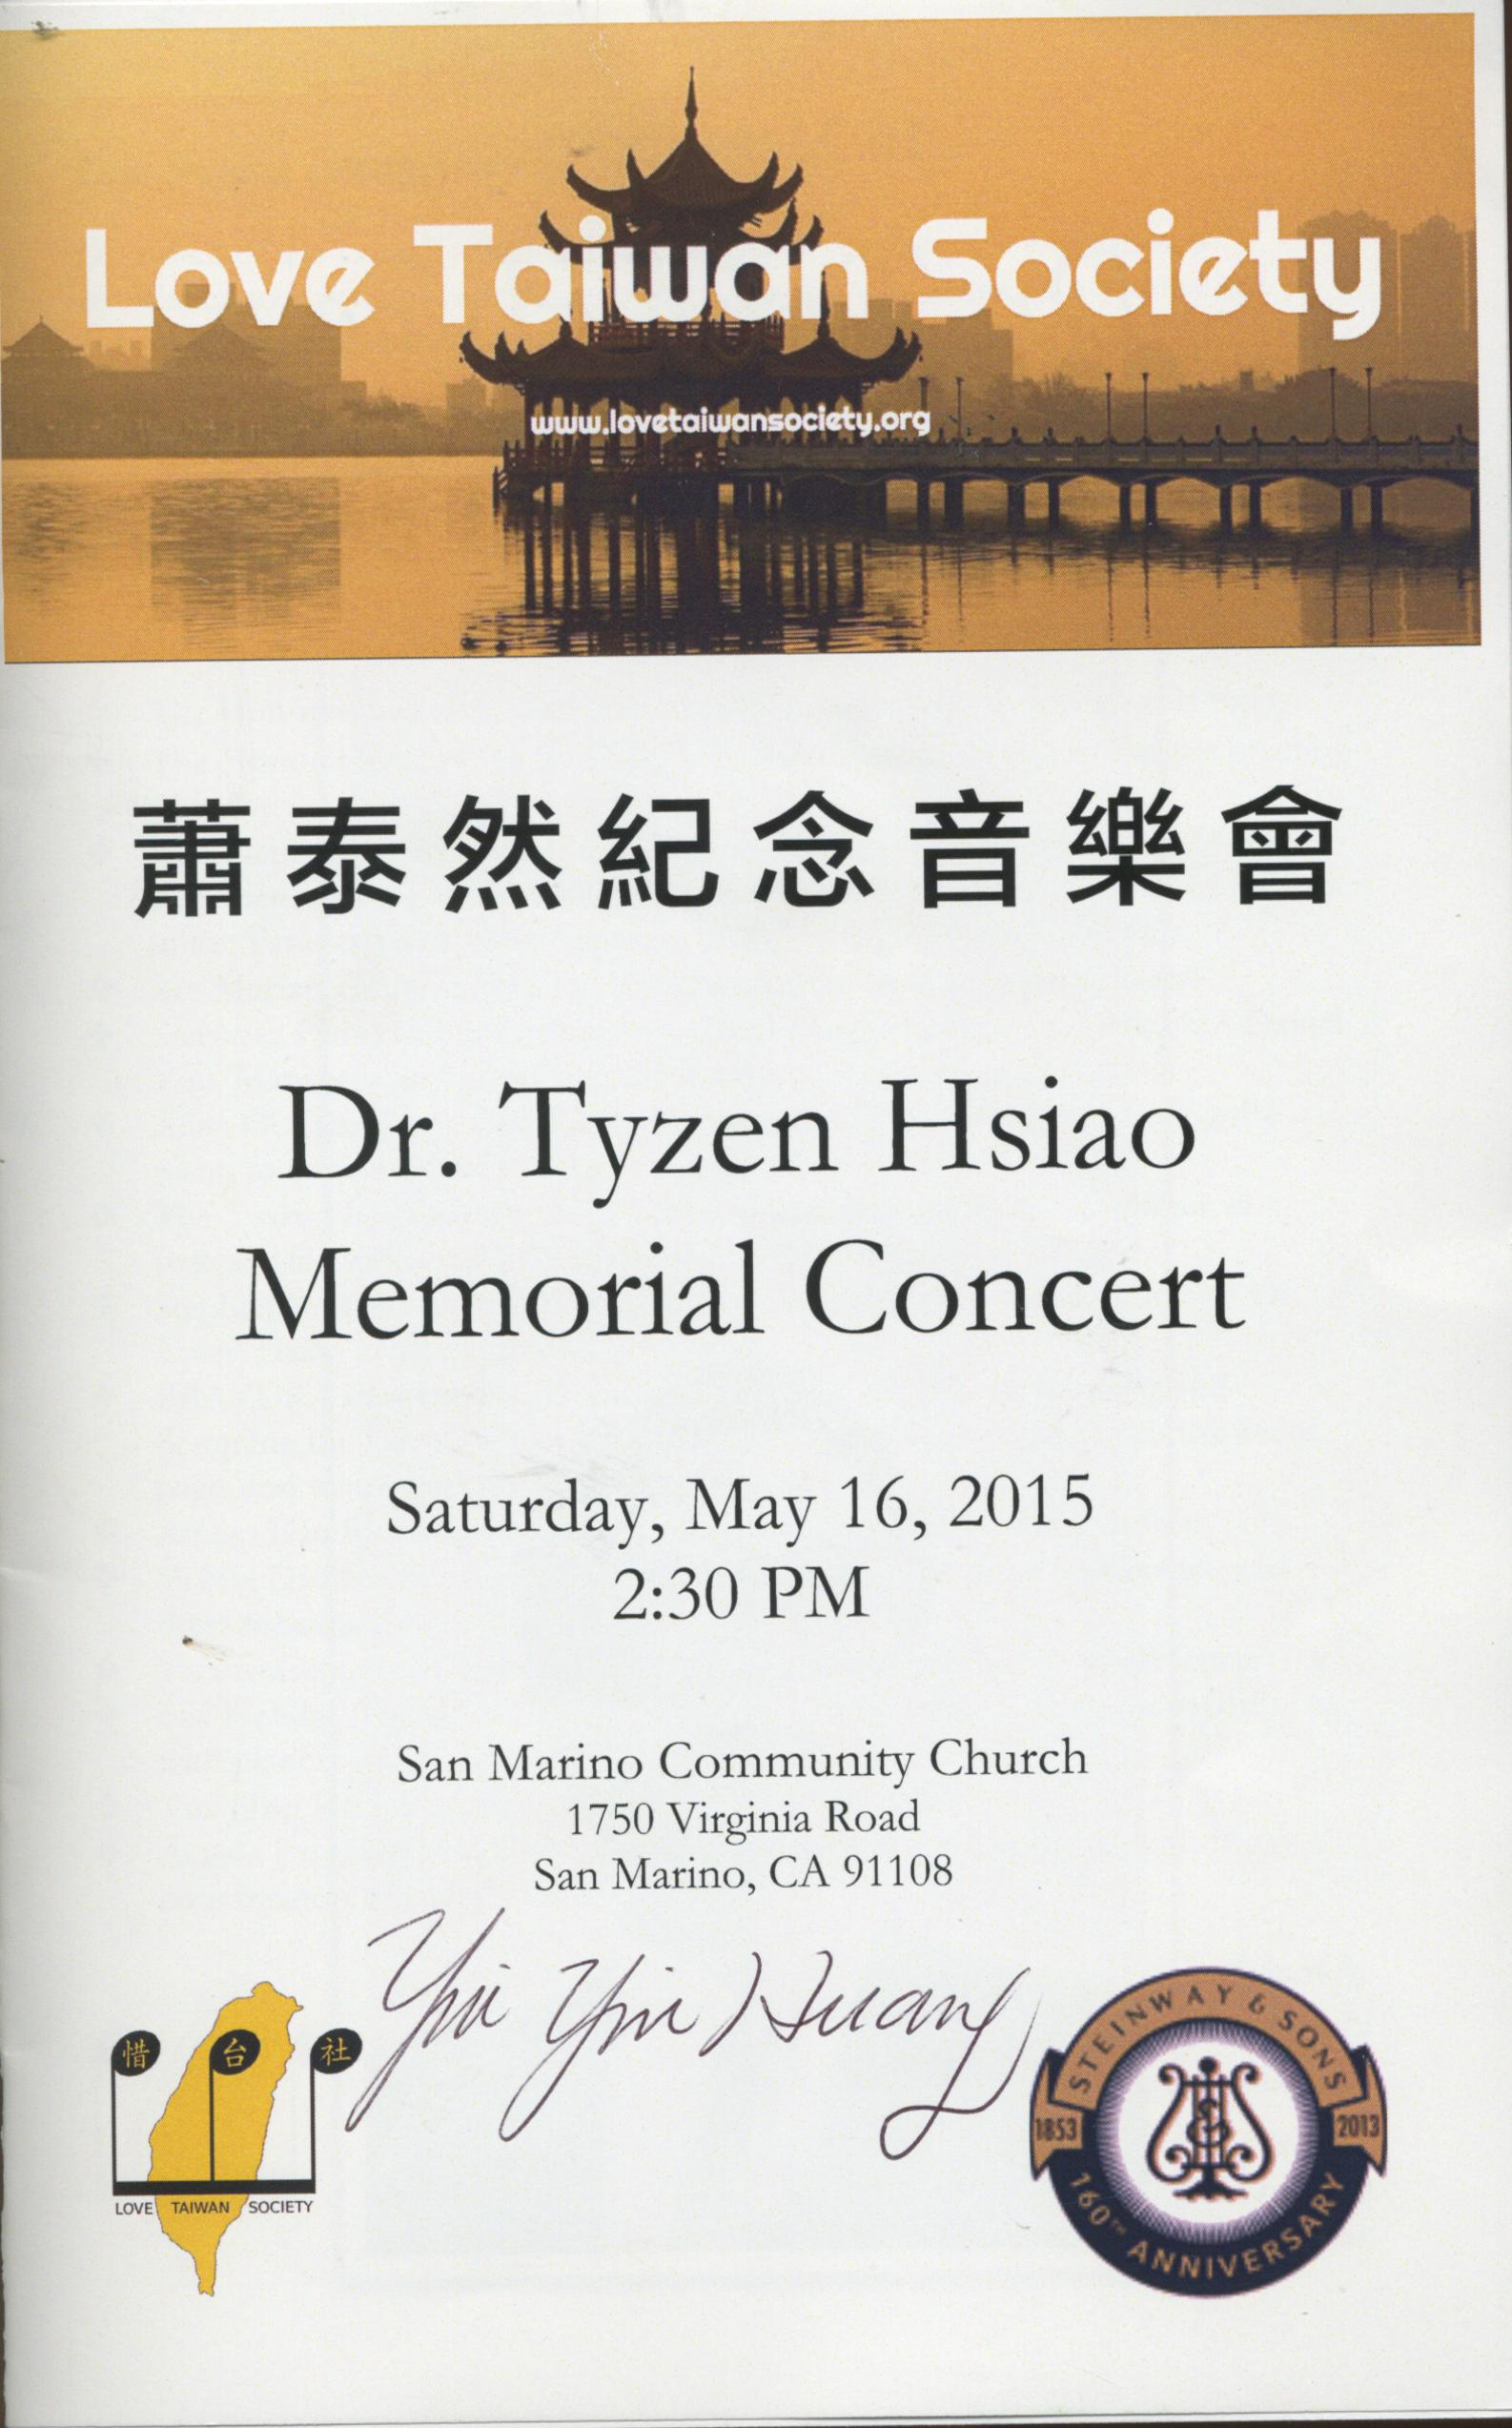 31. Dr. Tyzen Hsiao Memorial Concert (蕭泰然紀念音樂會) by Love Taiwan Society (惜台社), San Marino, CA on 05/16/2015